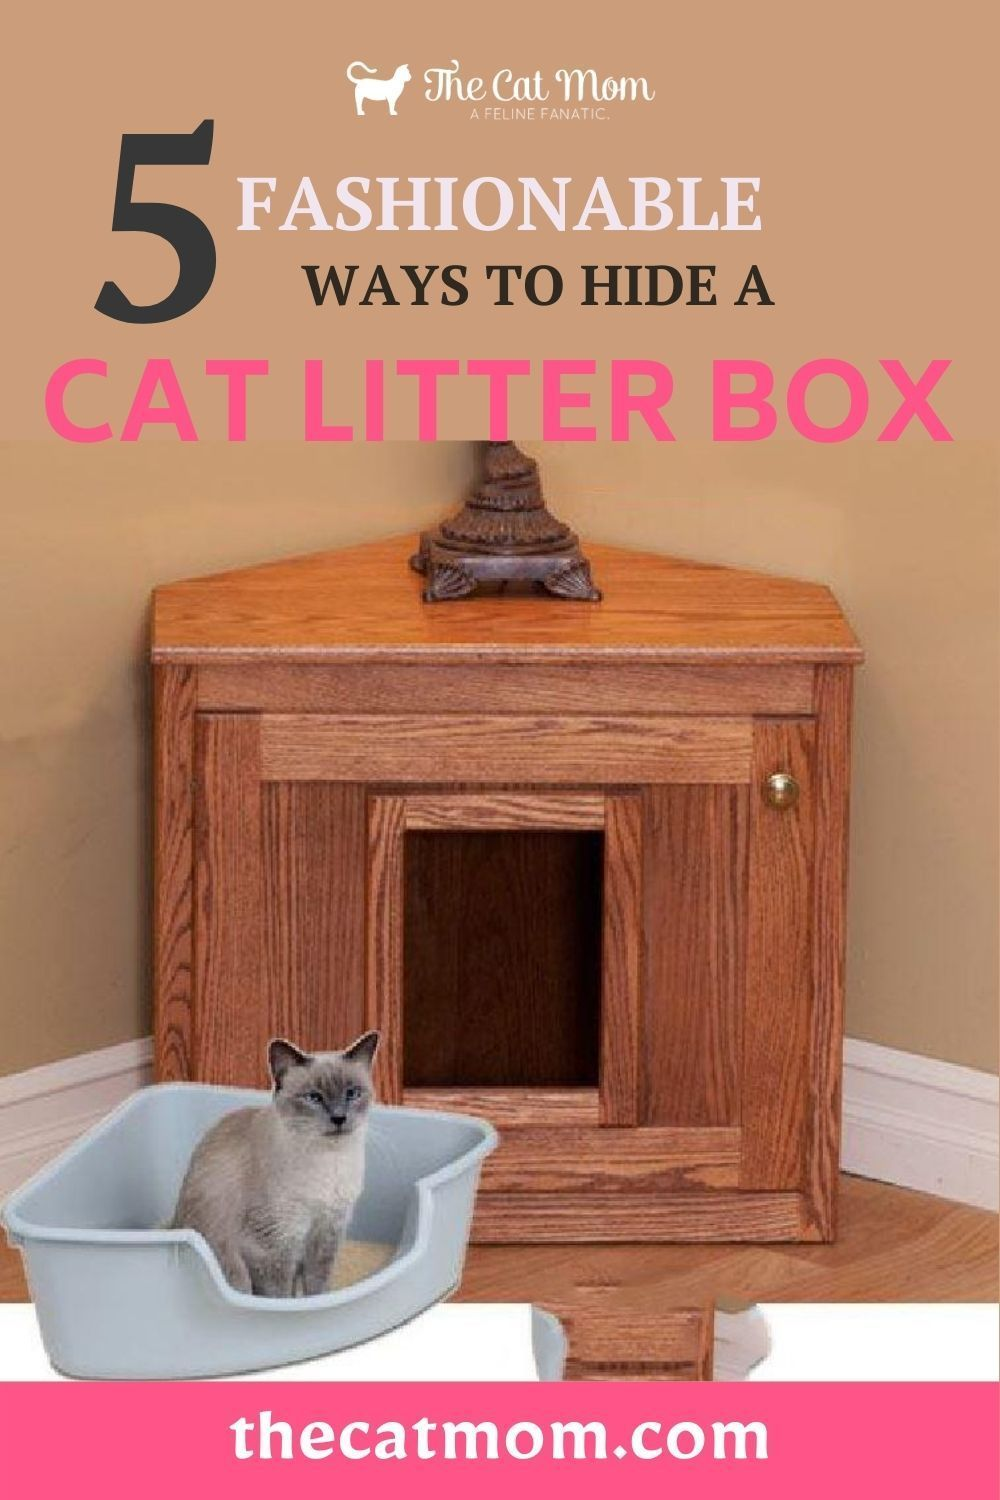 5 Fashionable Ways To Hide A Cat Litter Box In 2020 Cat Litter Cat Mom Litter Box